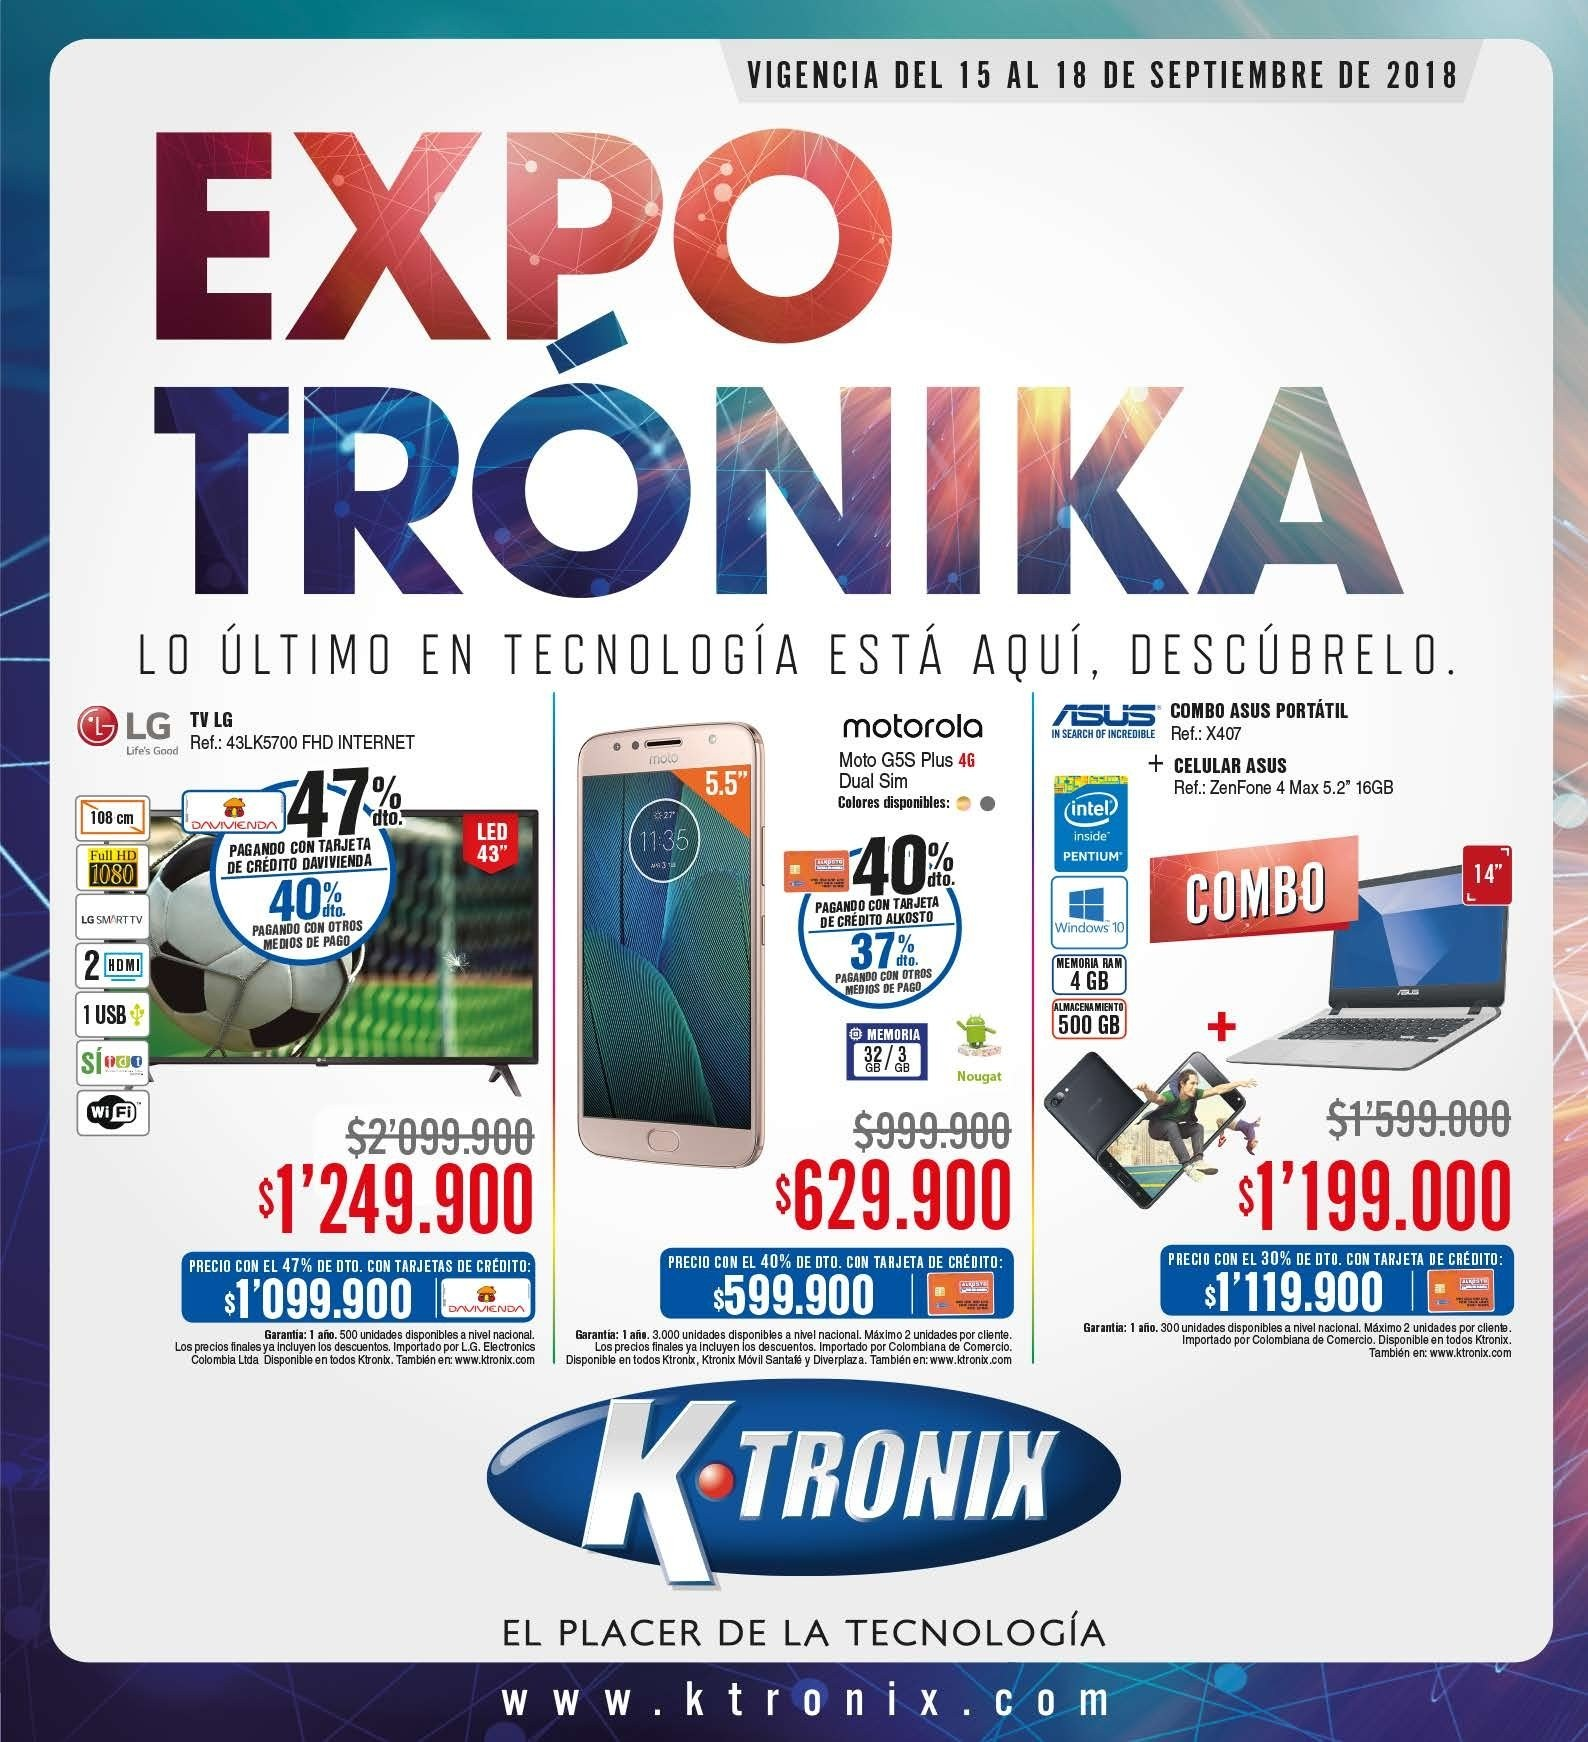 Folleto actual Ktronix - 09.15.2018 - 09.18.2018 - Ventas - portátil, asus, dual sim, full hd, hdmi, intel, lg, tv, usb, pentium, celular. Página 1.